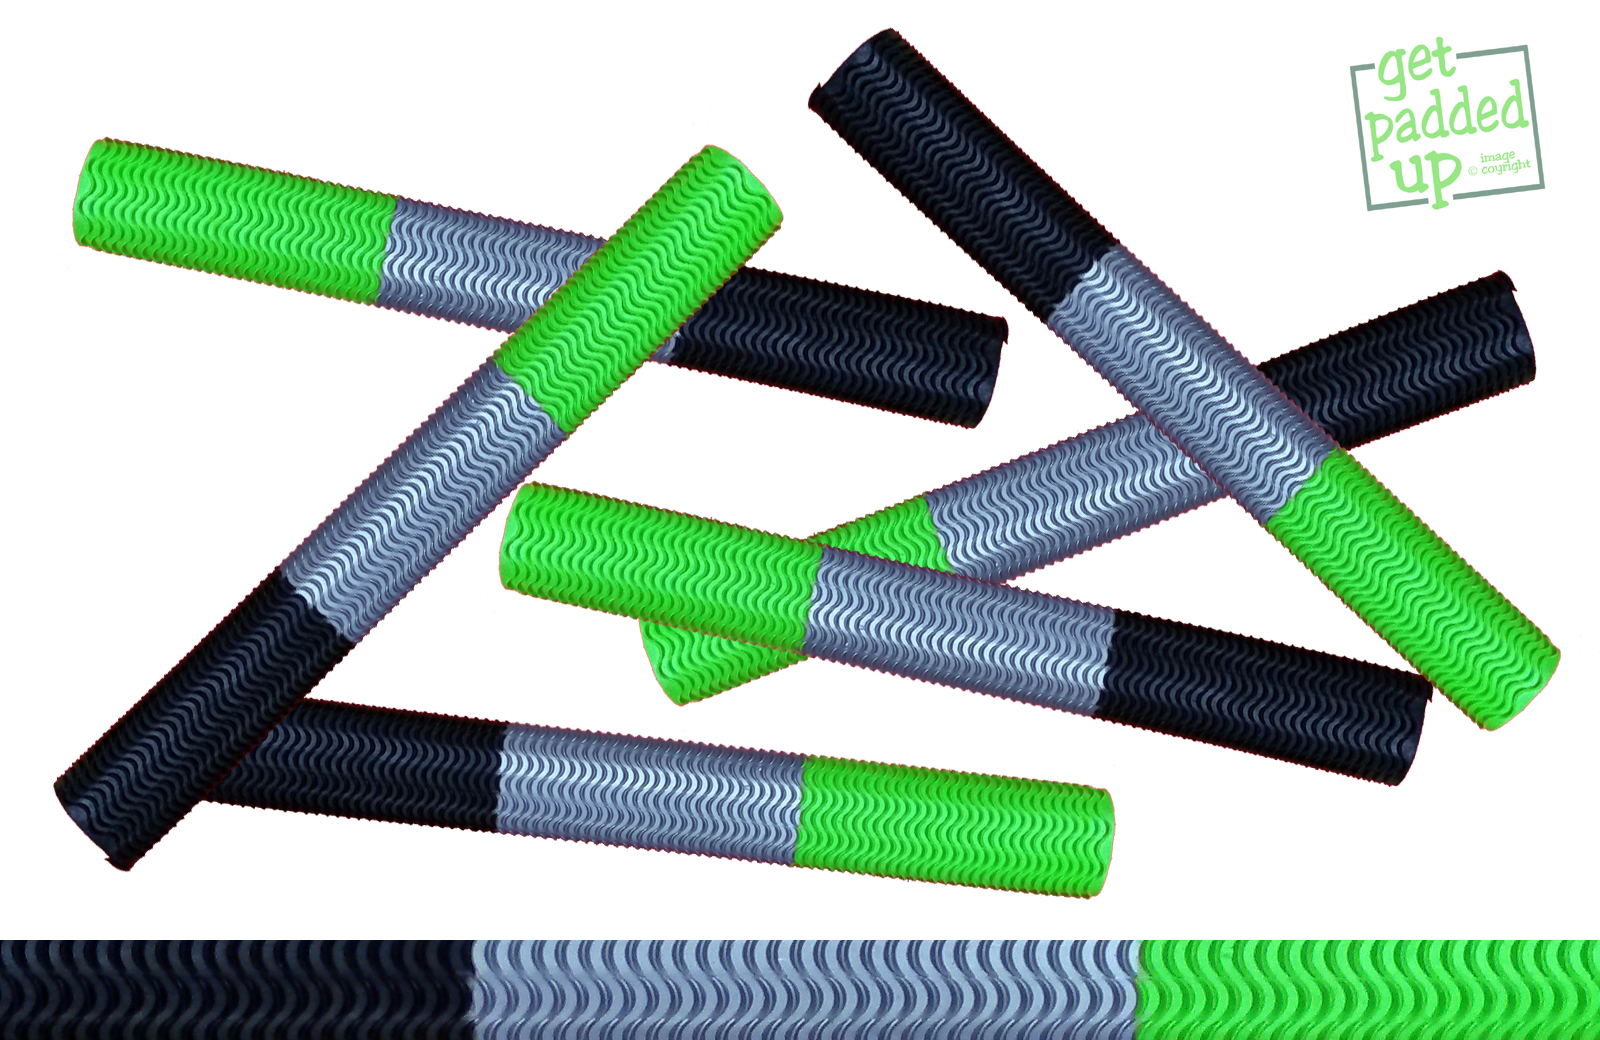 getpaddedup AQUA WAVE CRICKET BAT GRIP (BLACK / SILVER / LIME GREEN)